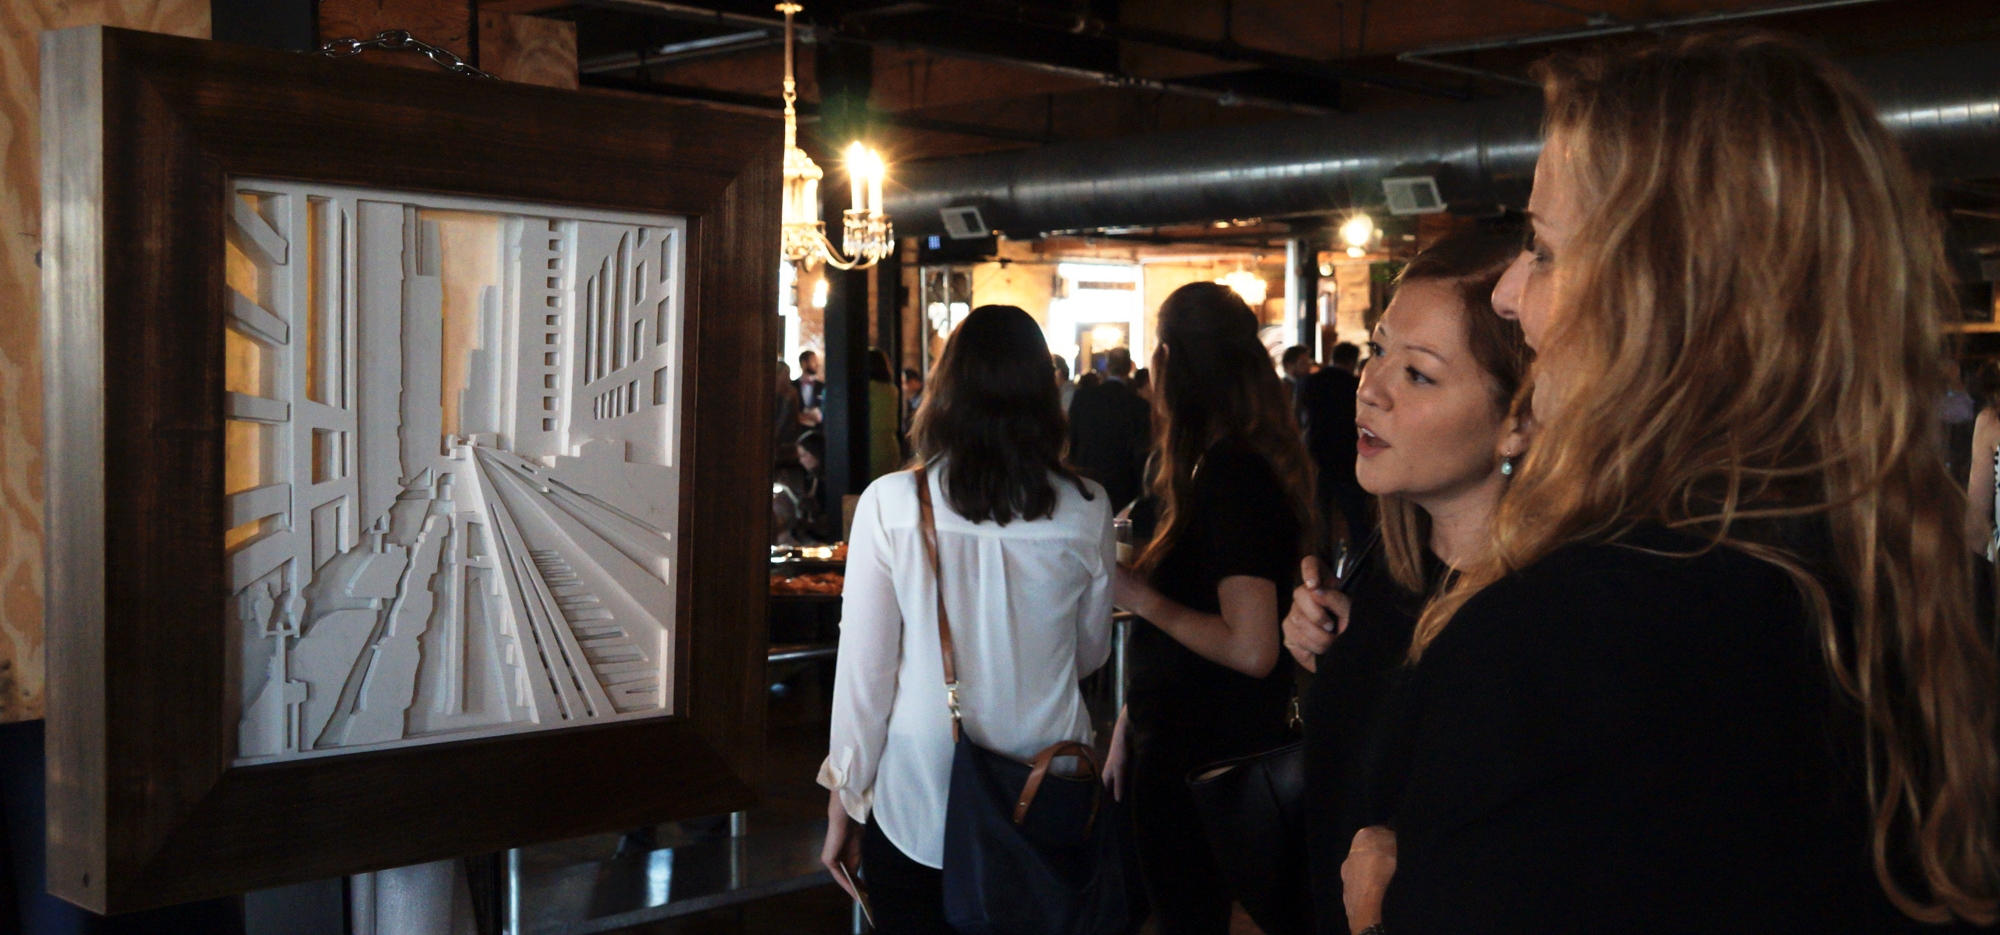 The framed and backlit piece was displayed at the Chicago Artists Showcase at Salvage One and later donated via raffle.